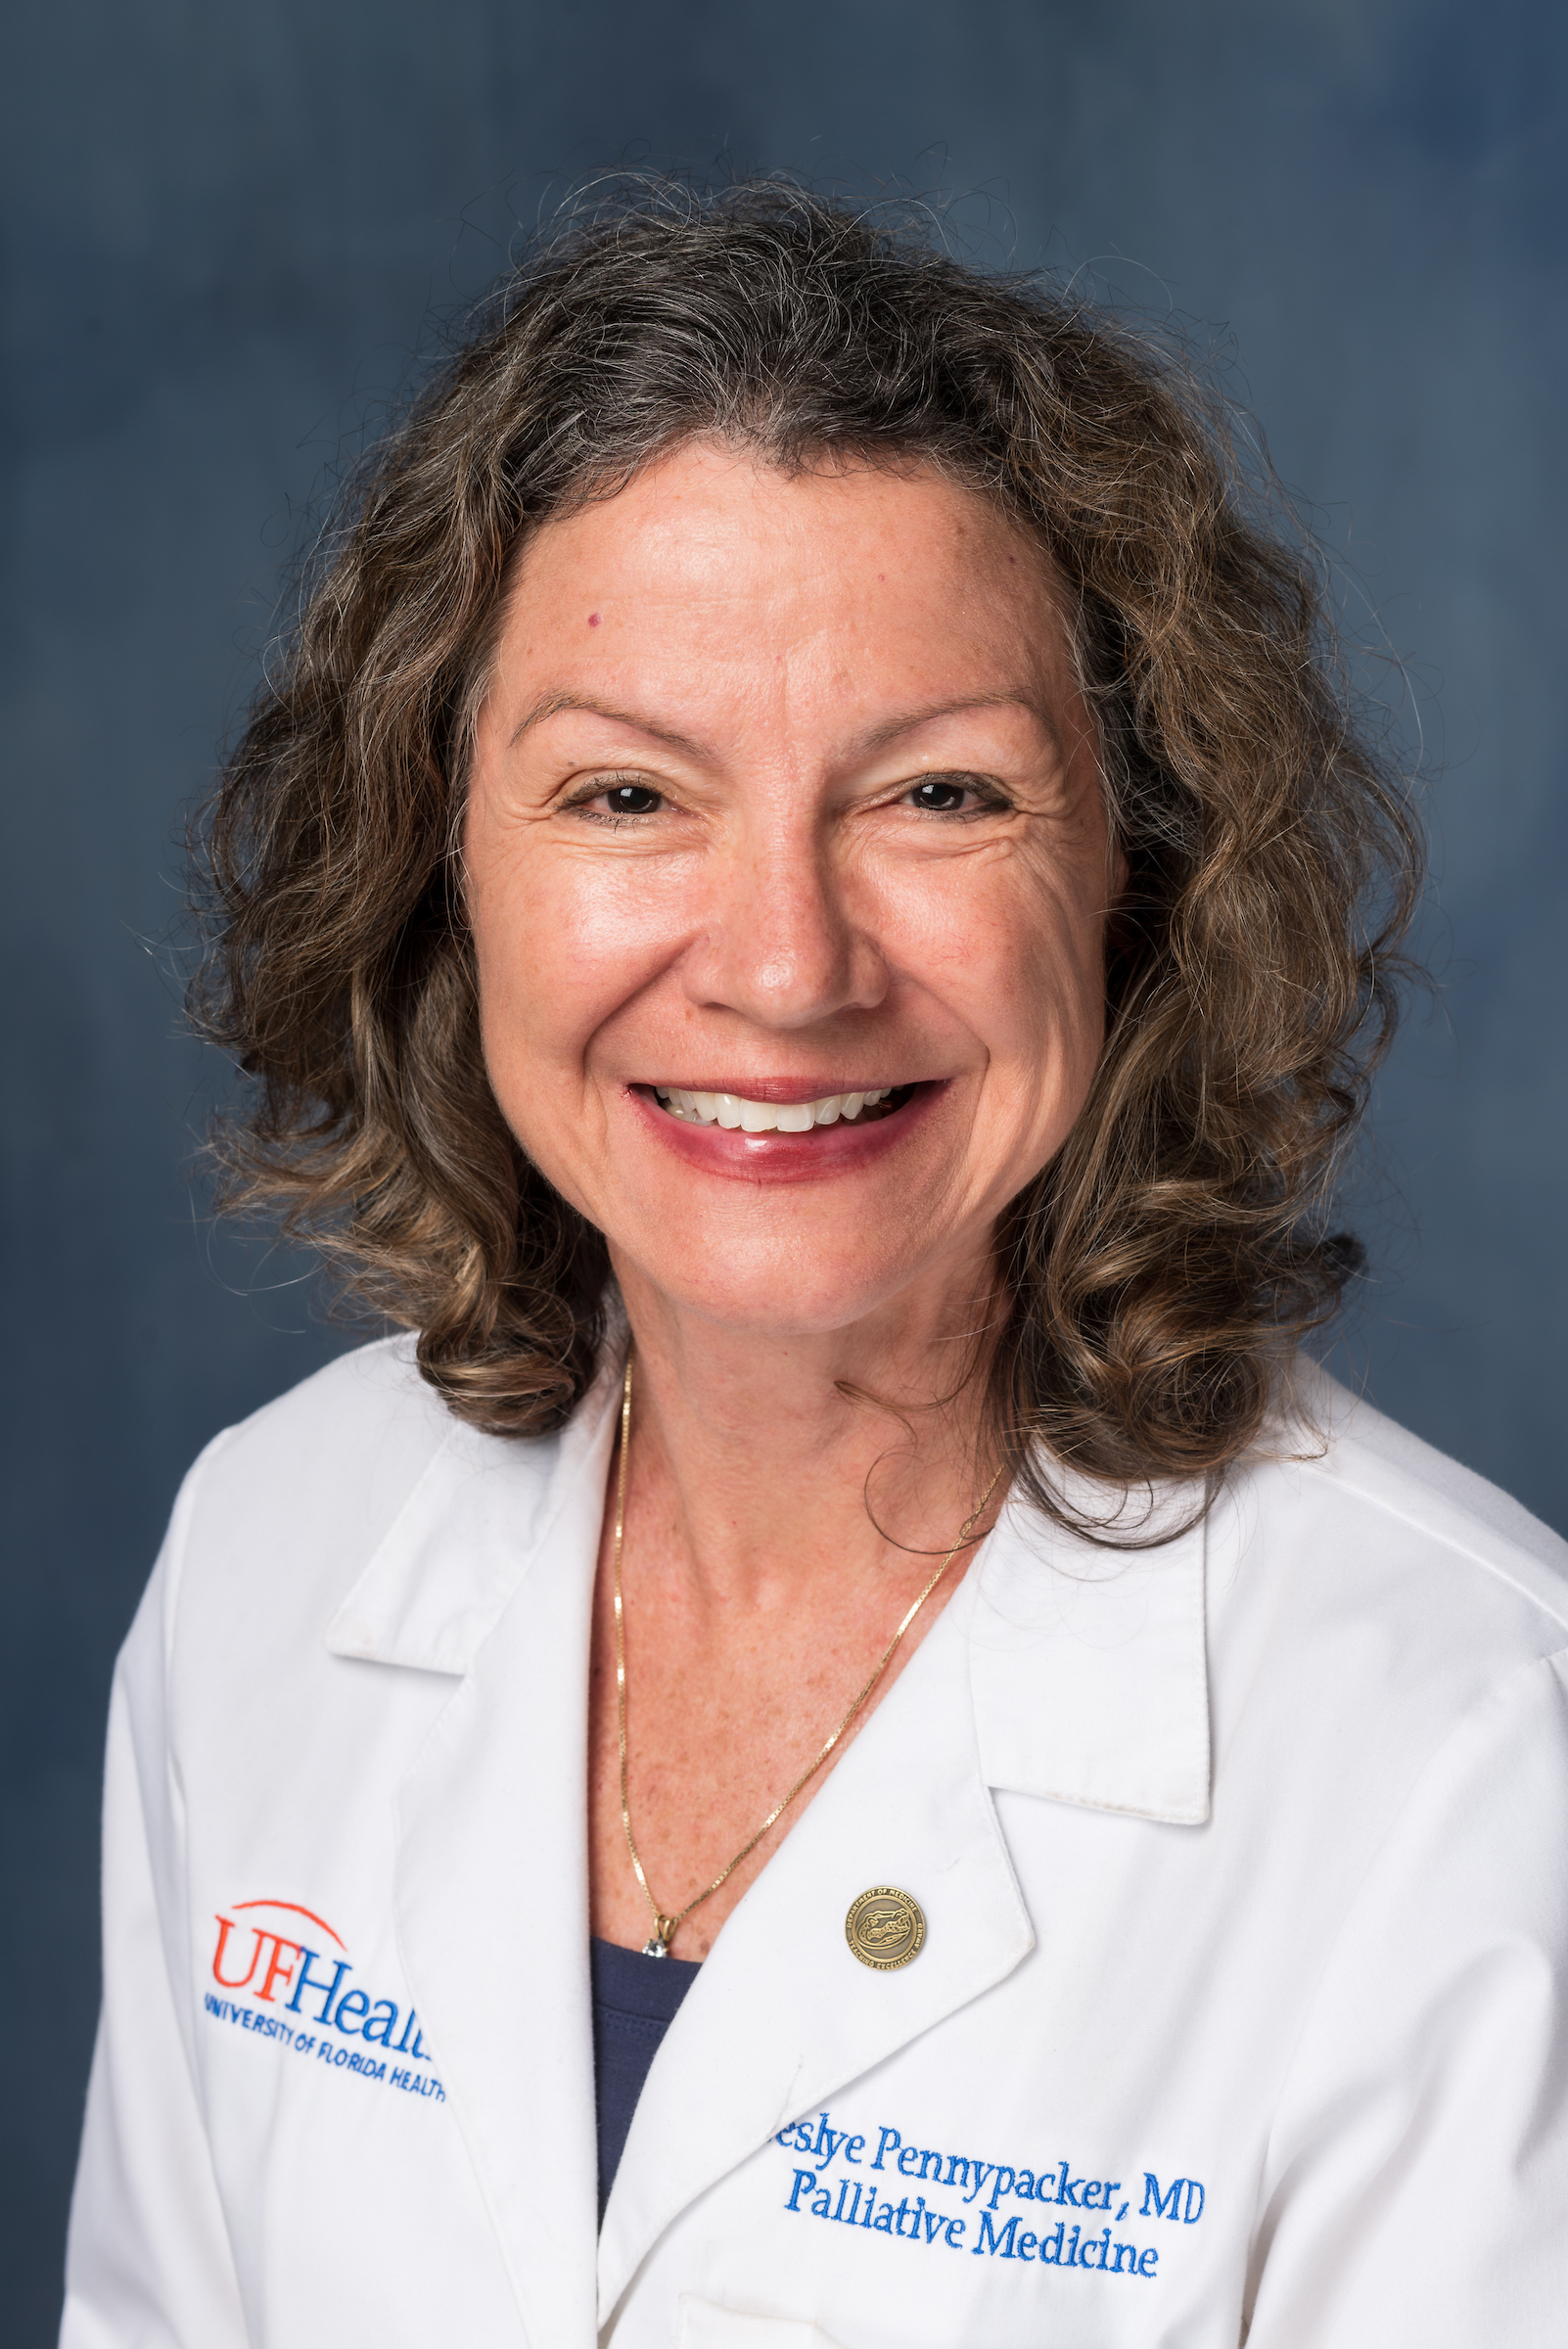 Dr. Leslye Pennypacker, board-certified in internal medicine and geriatrics